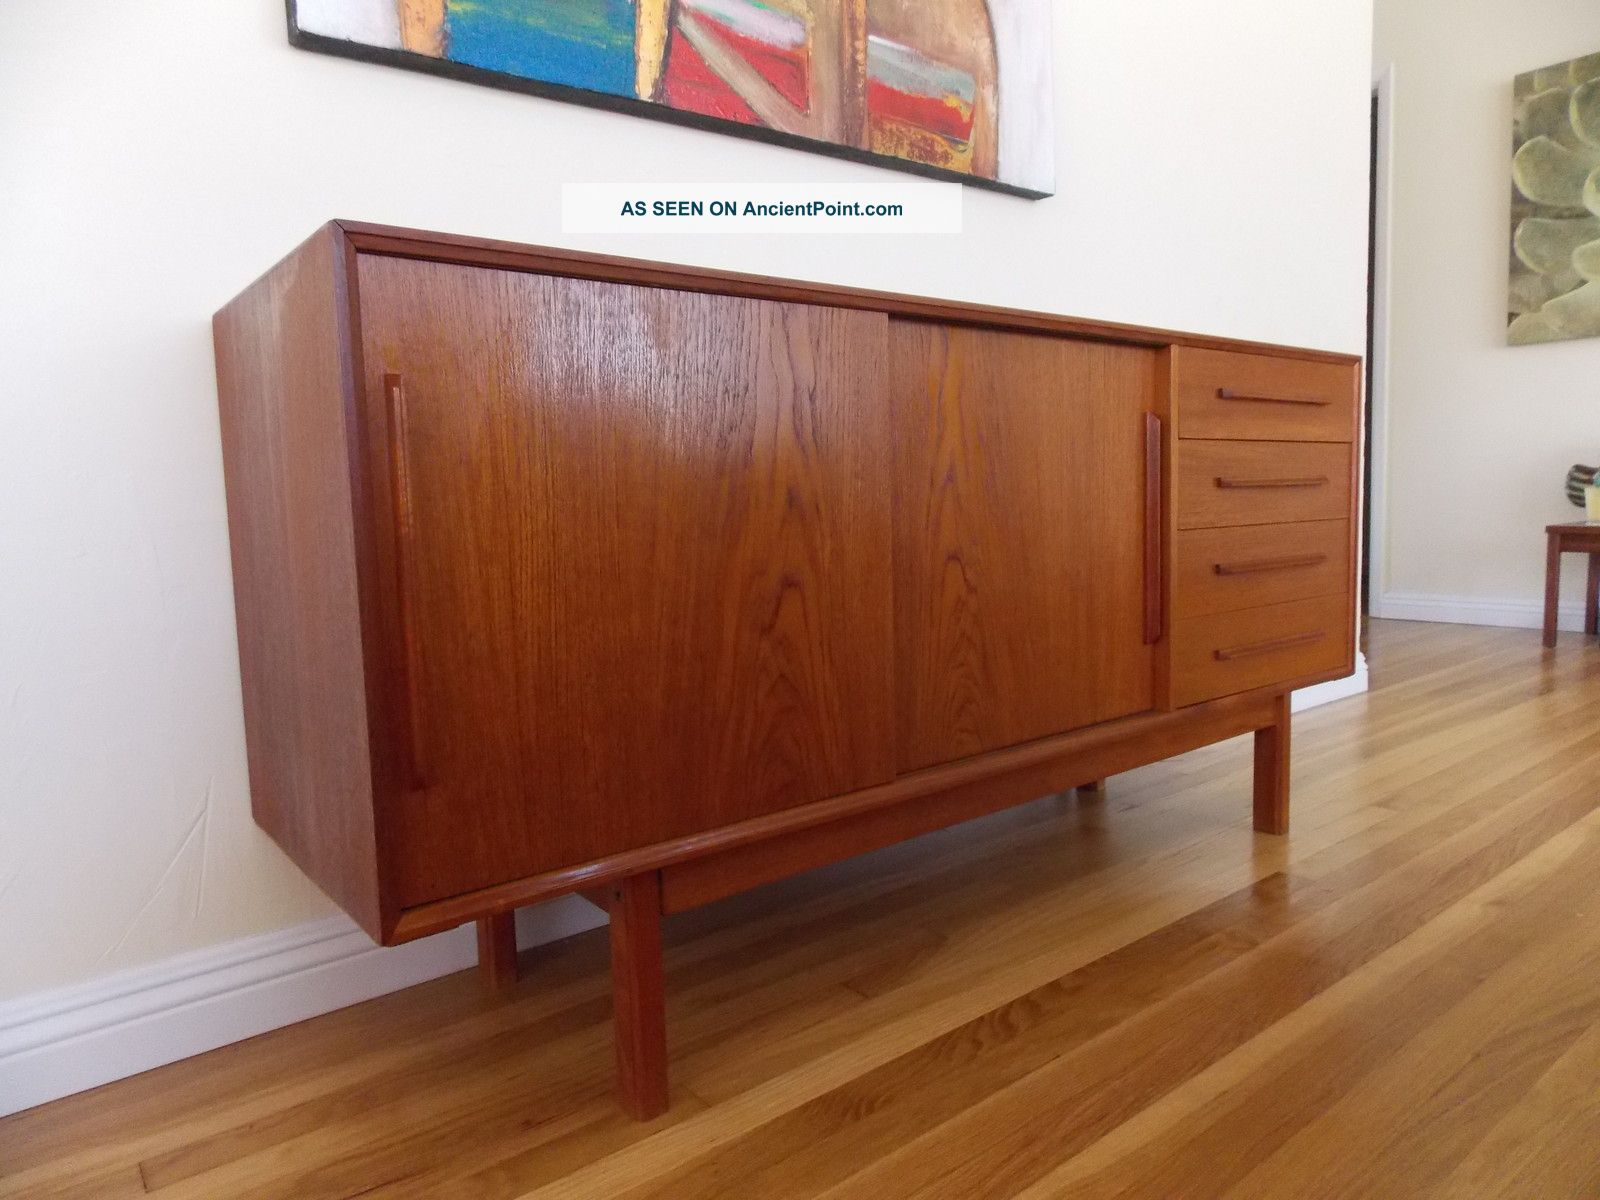 Mid Century Dresser with sideboard dufet display case before white wall